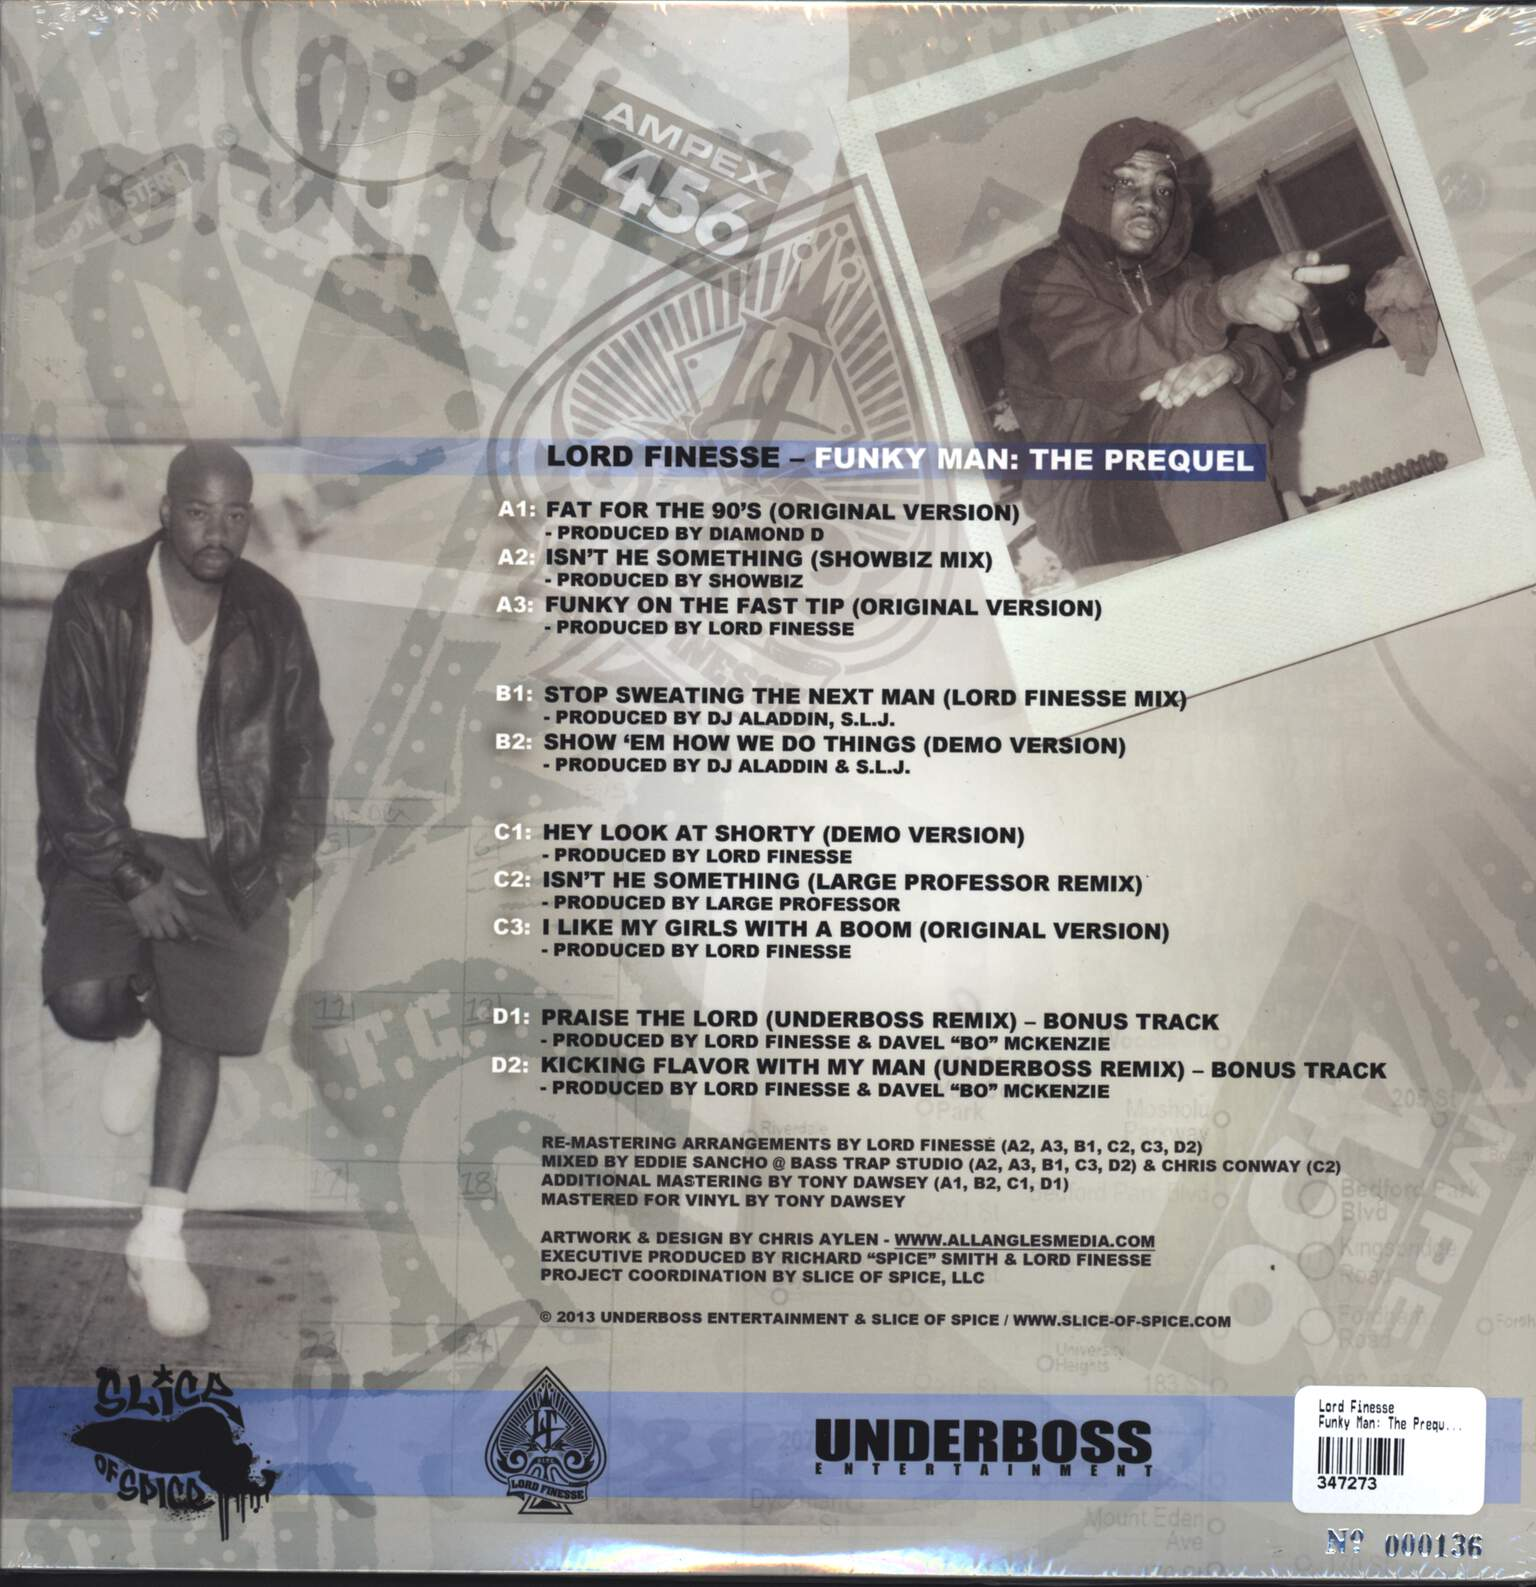 Lord Finesse: Funky Man: The Prequel, LP (Vinyl)